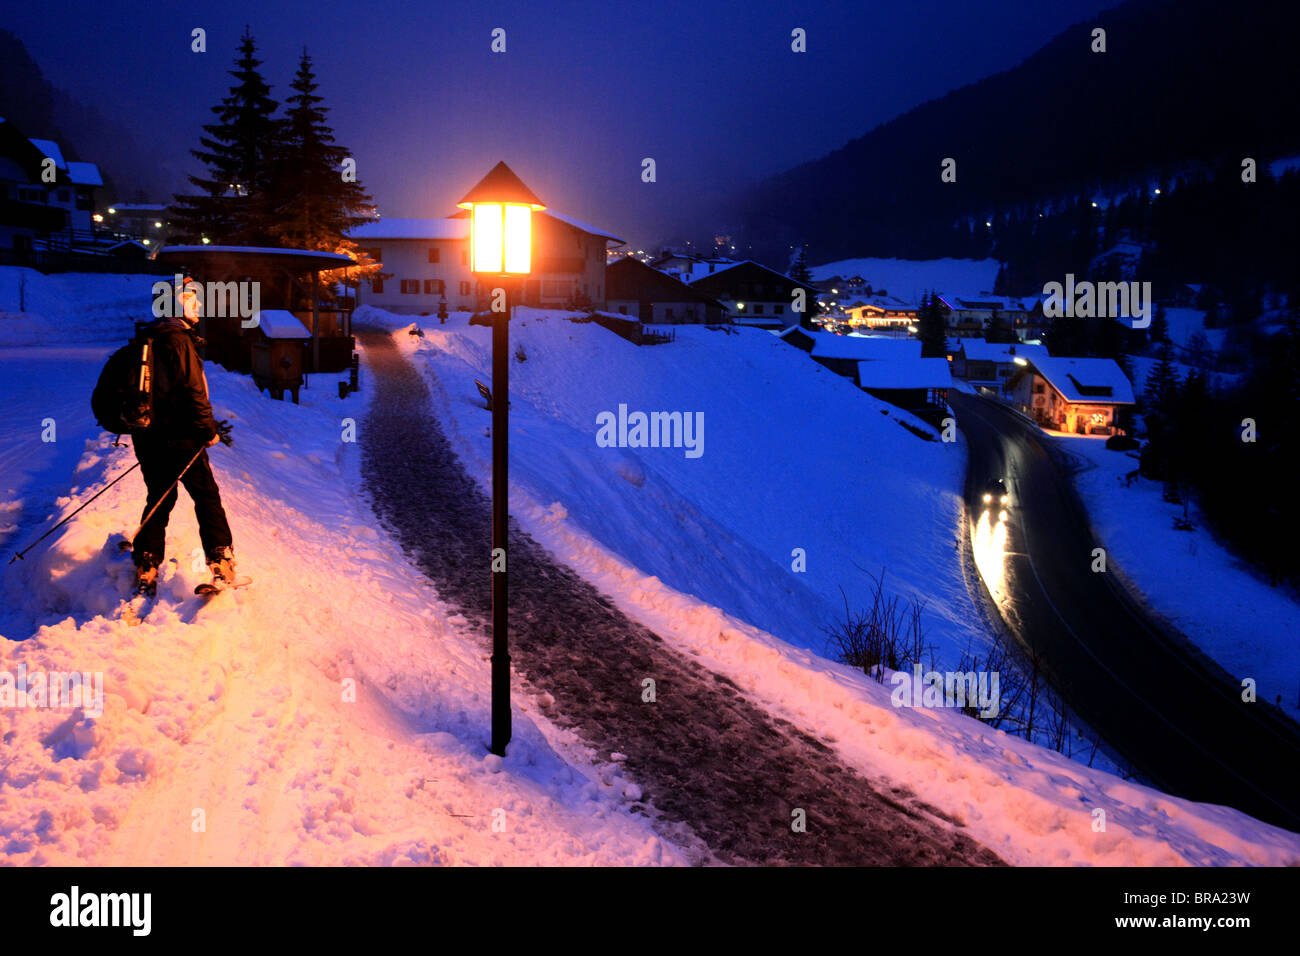 A skier standing below a city light at night in Selva Gardena, Val Gardena, Dolomites, Italy - Stock Image